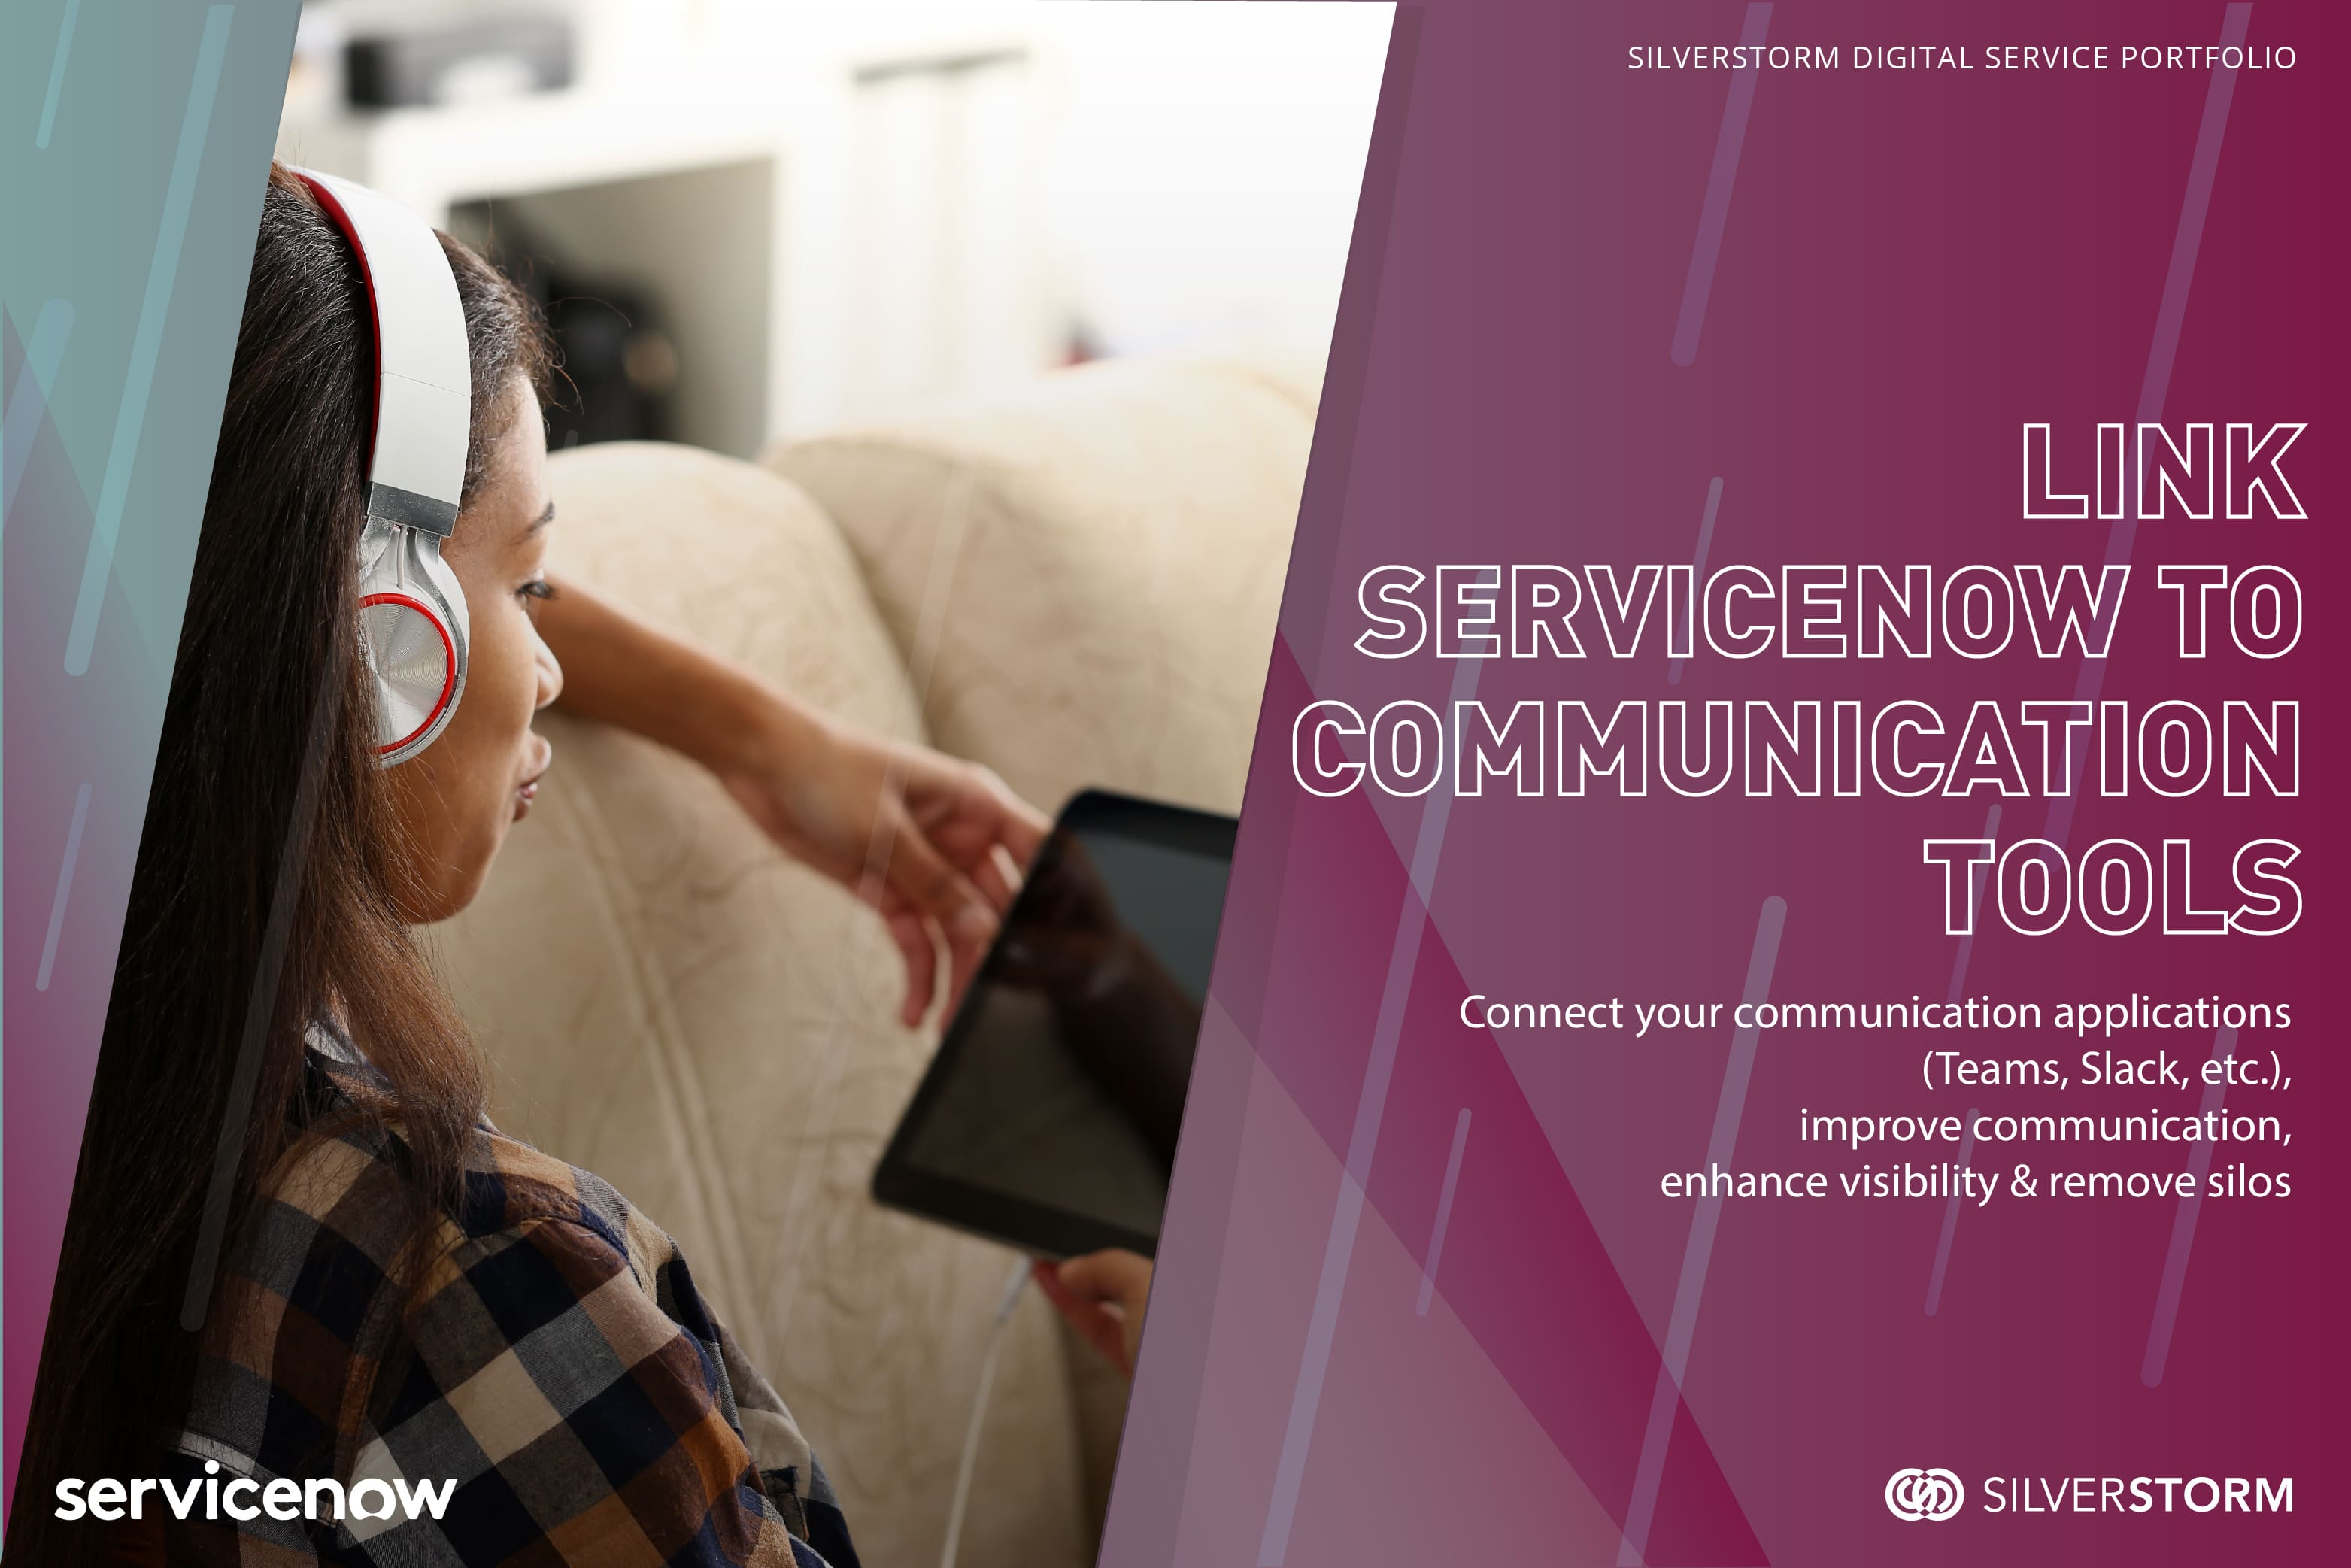 Link ServiceNow To Communications Tools